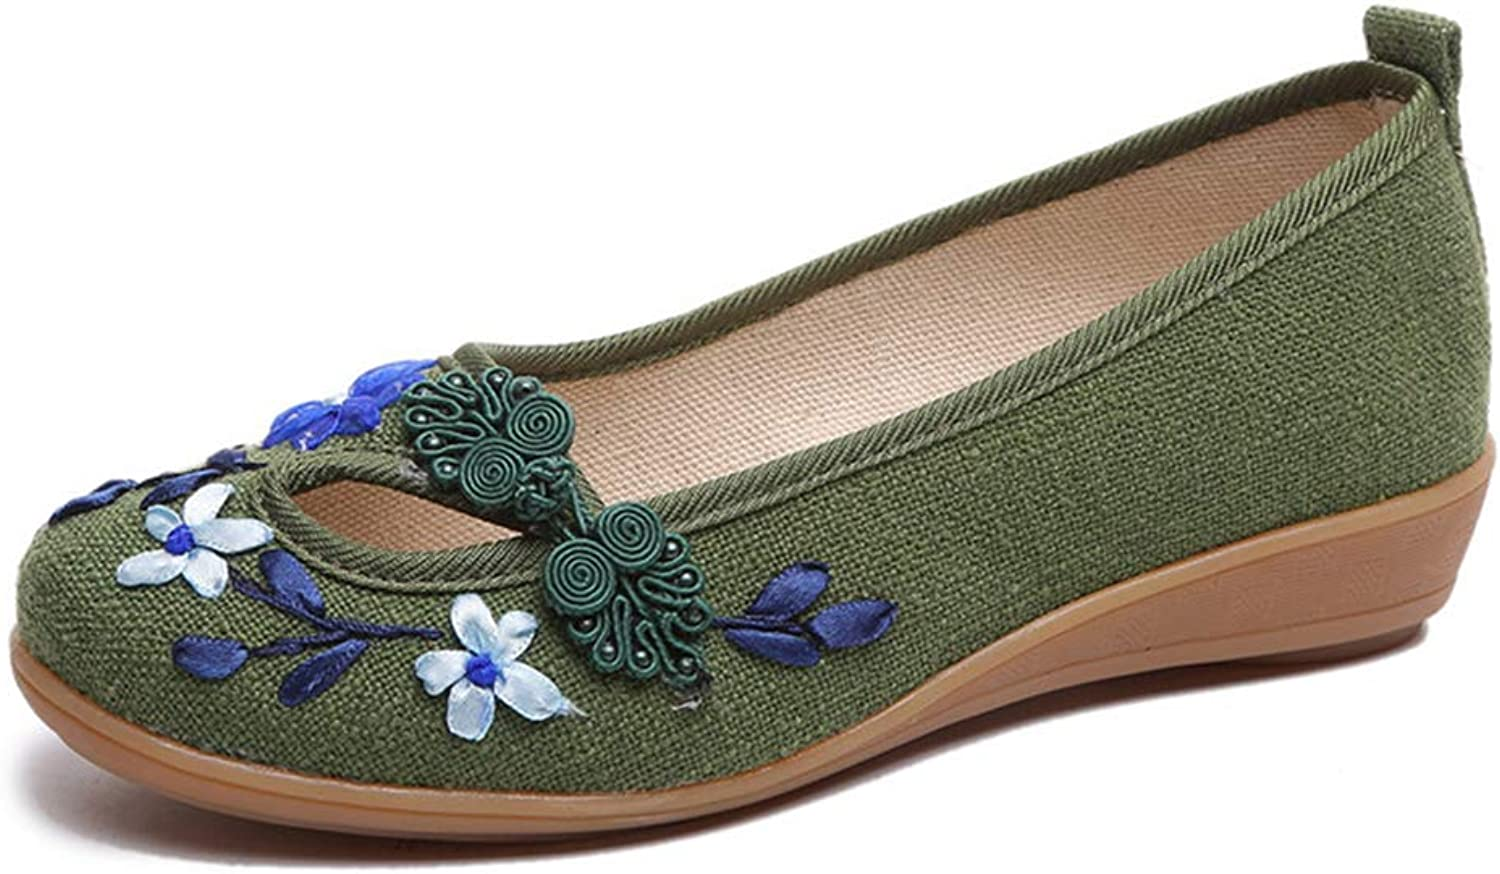 Kyle Walsh Pa Women Stylish Flats shoes Embroidered Flower Female Casual Handmade Moccasins